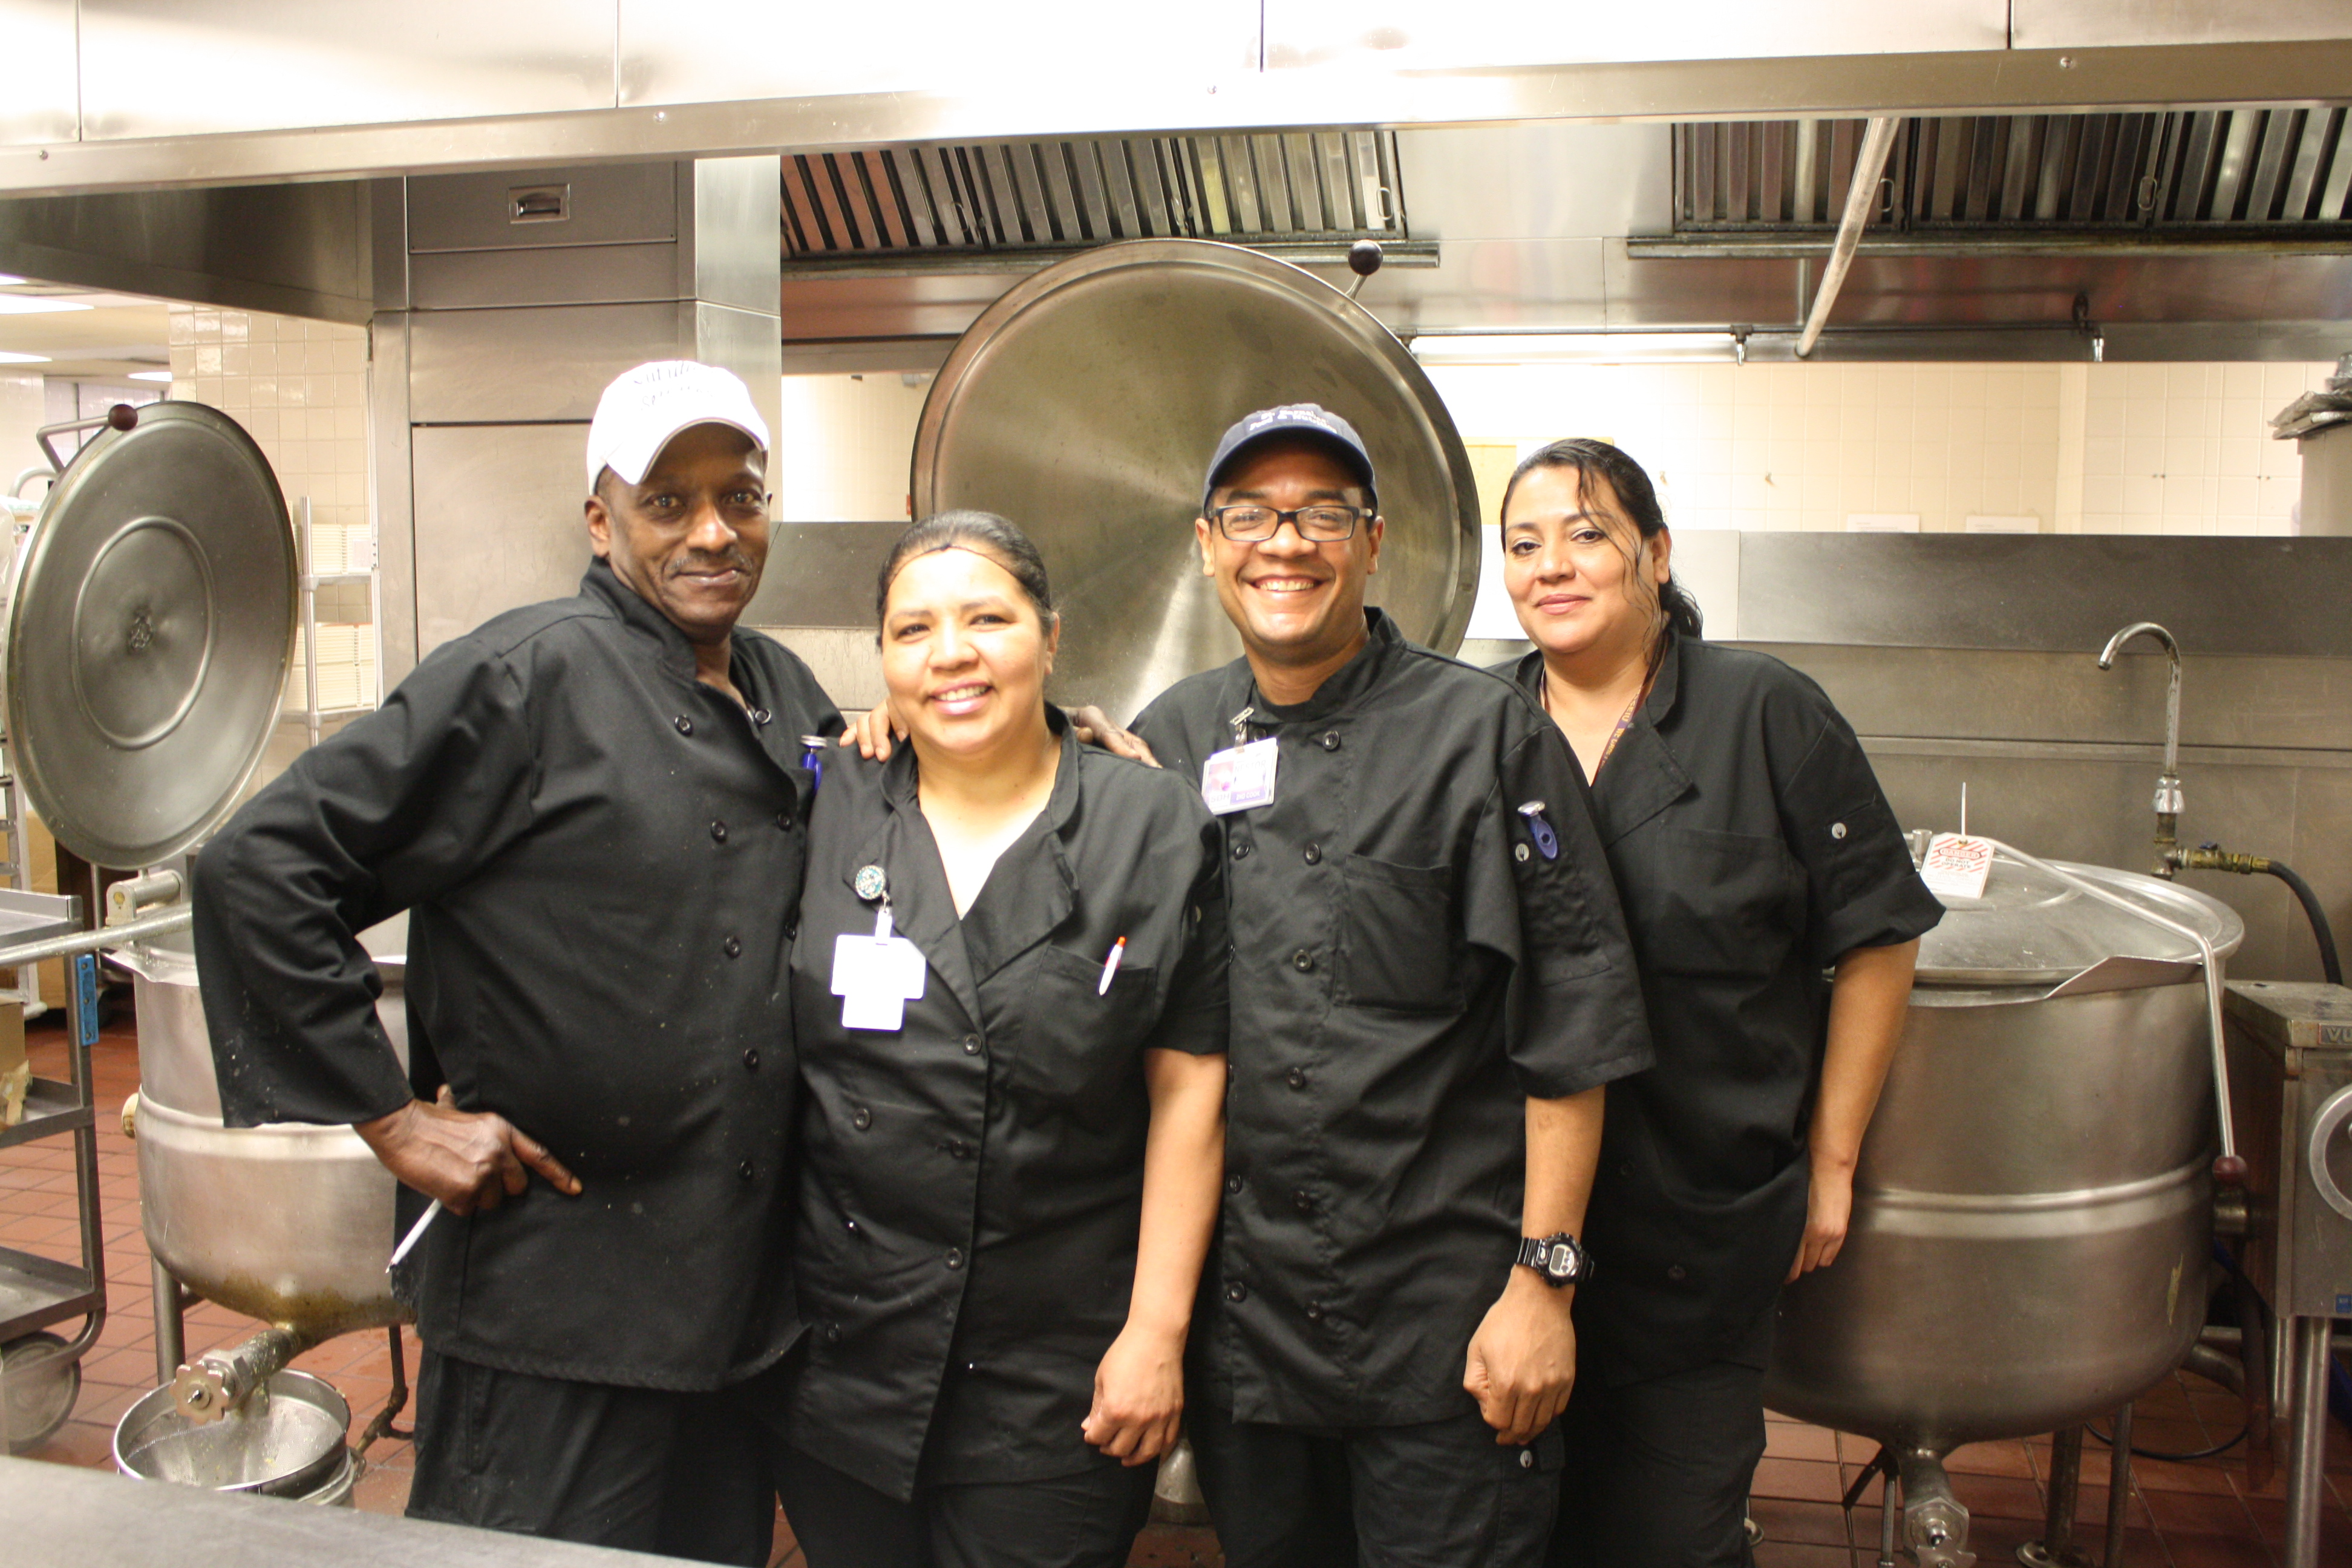 Image of Cooking Staff from St. Barnabas Hospital